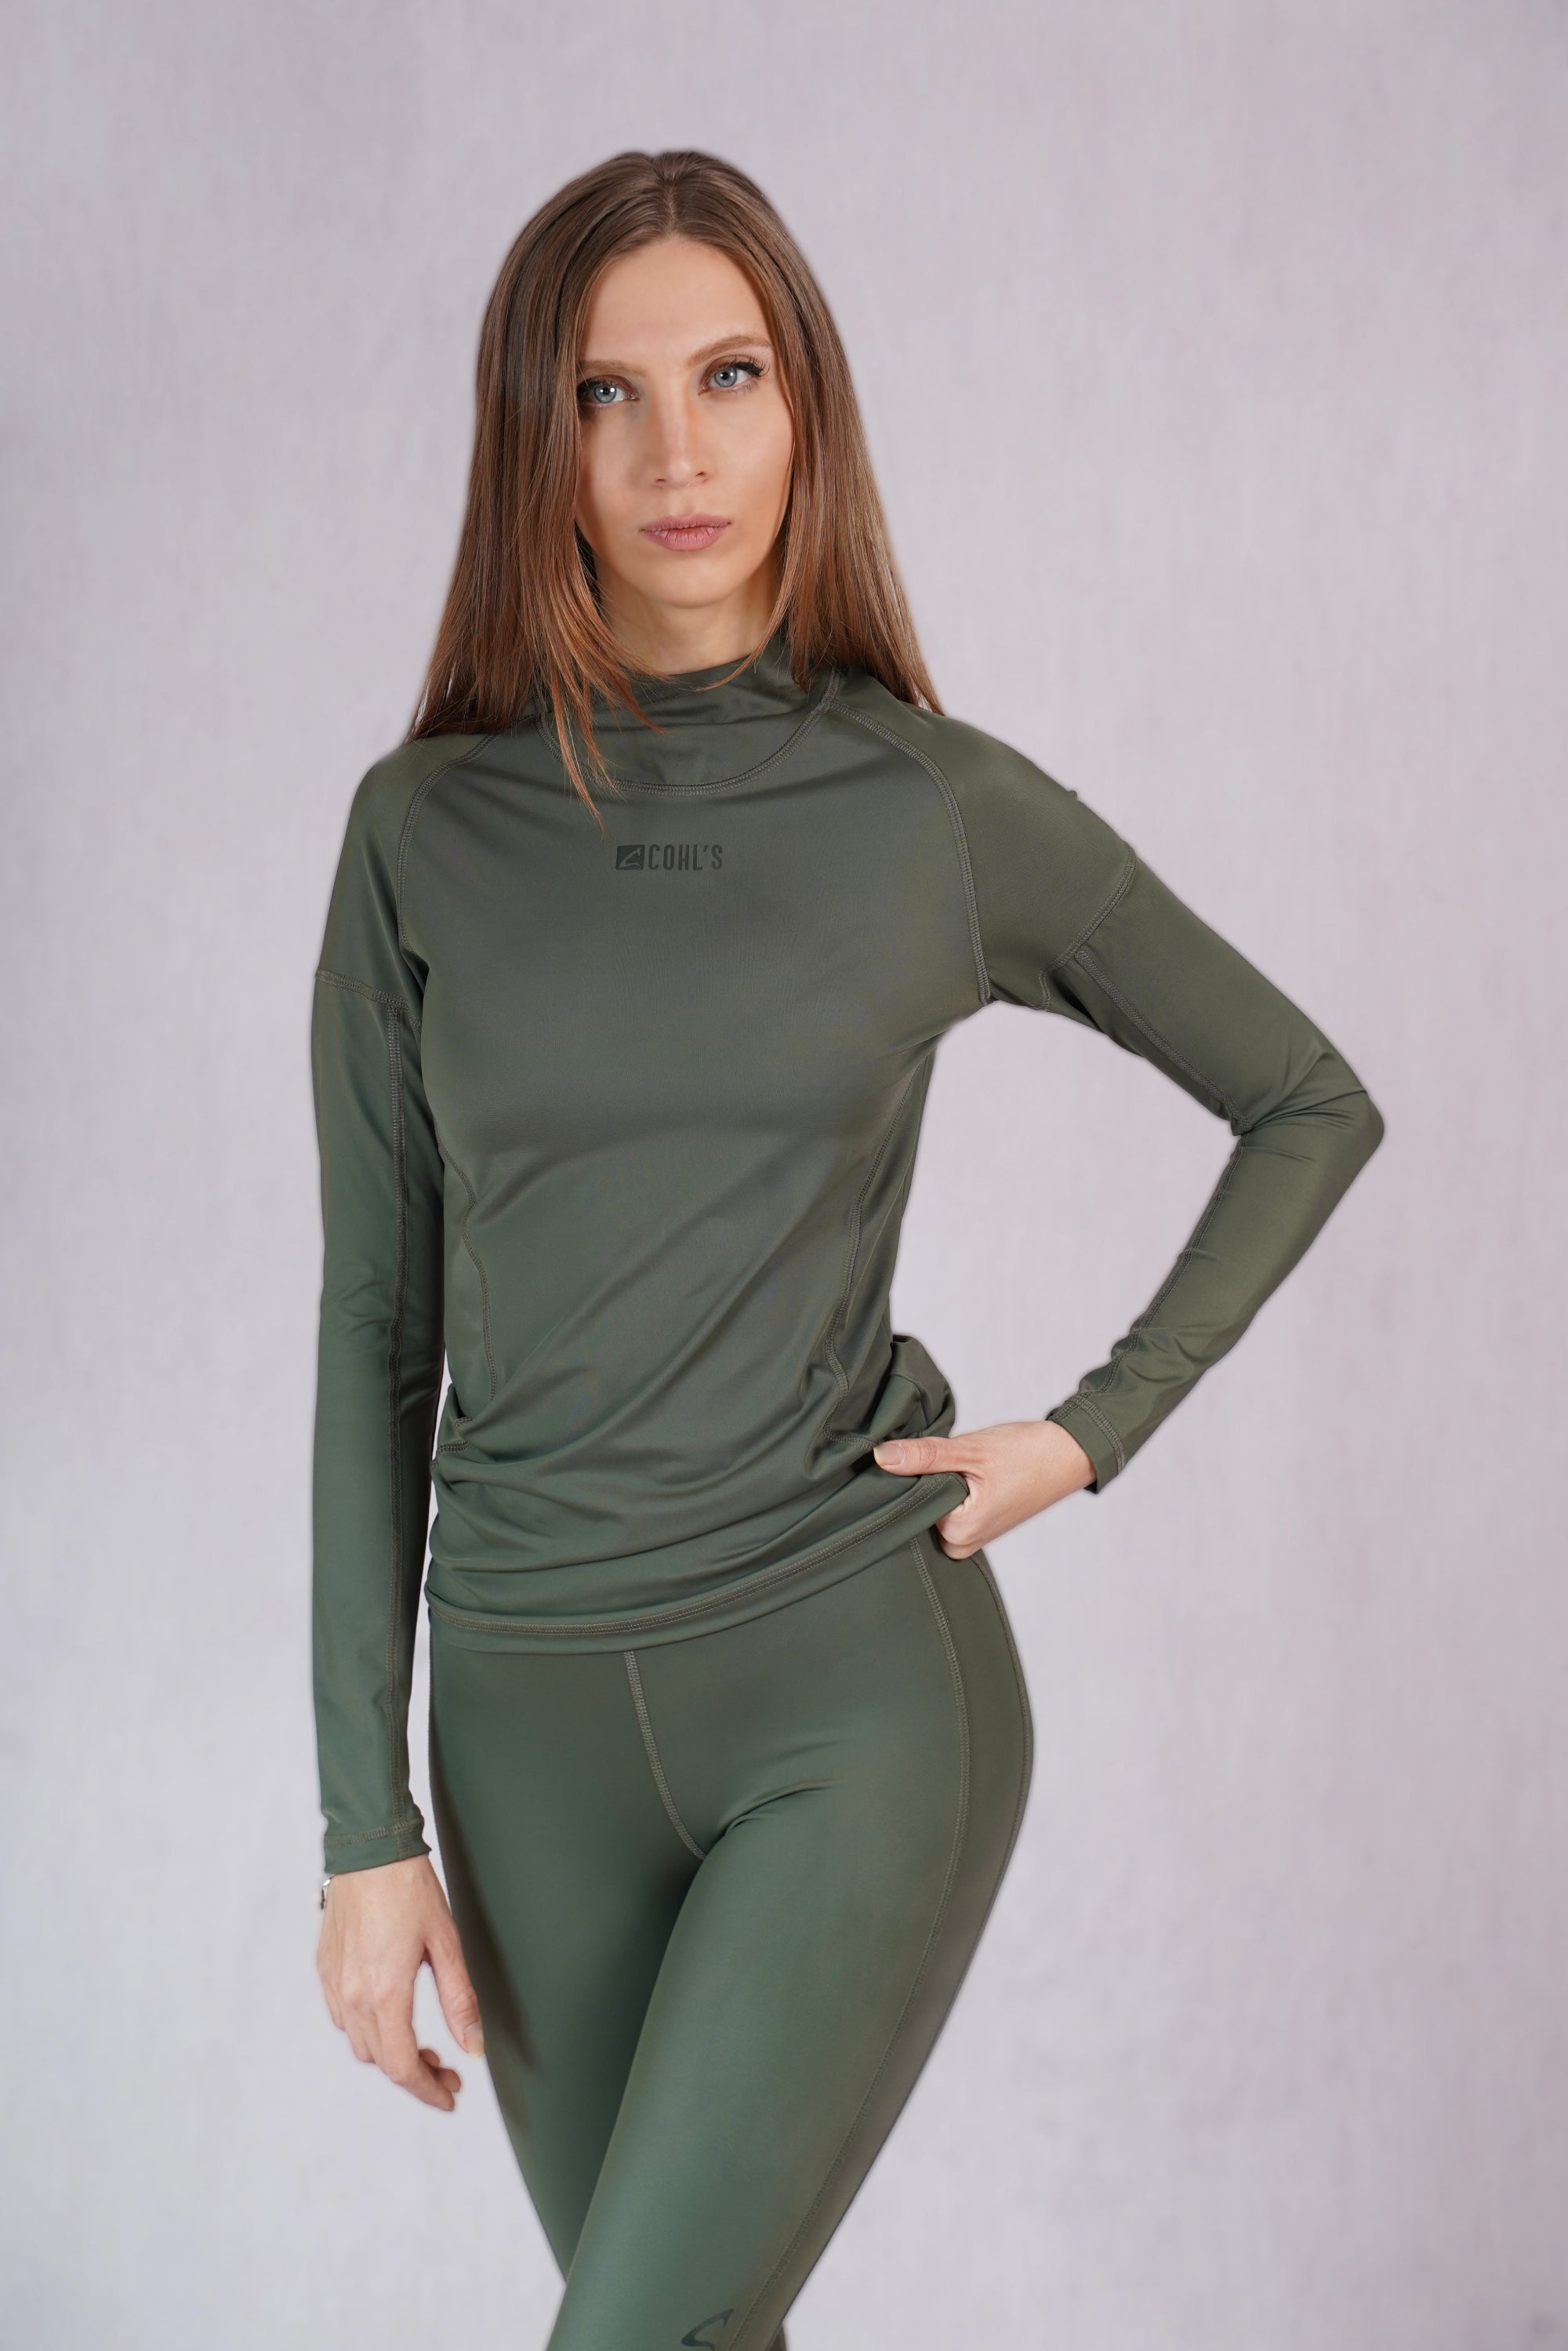 Slim Fit T-shirt in Army